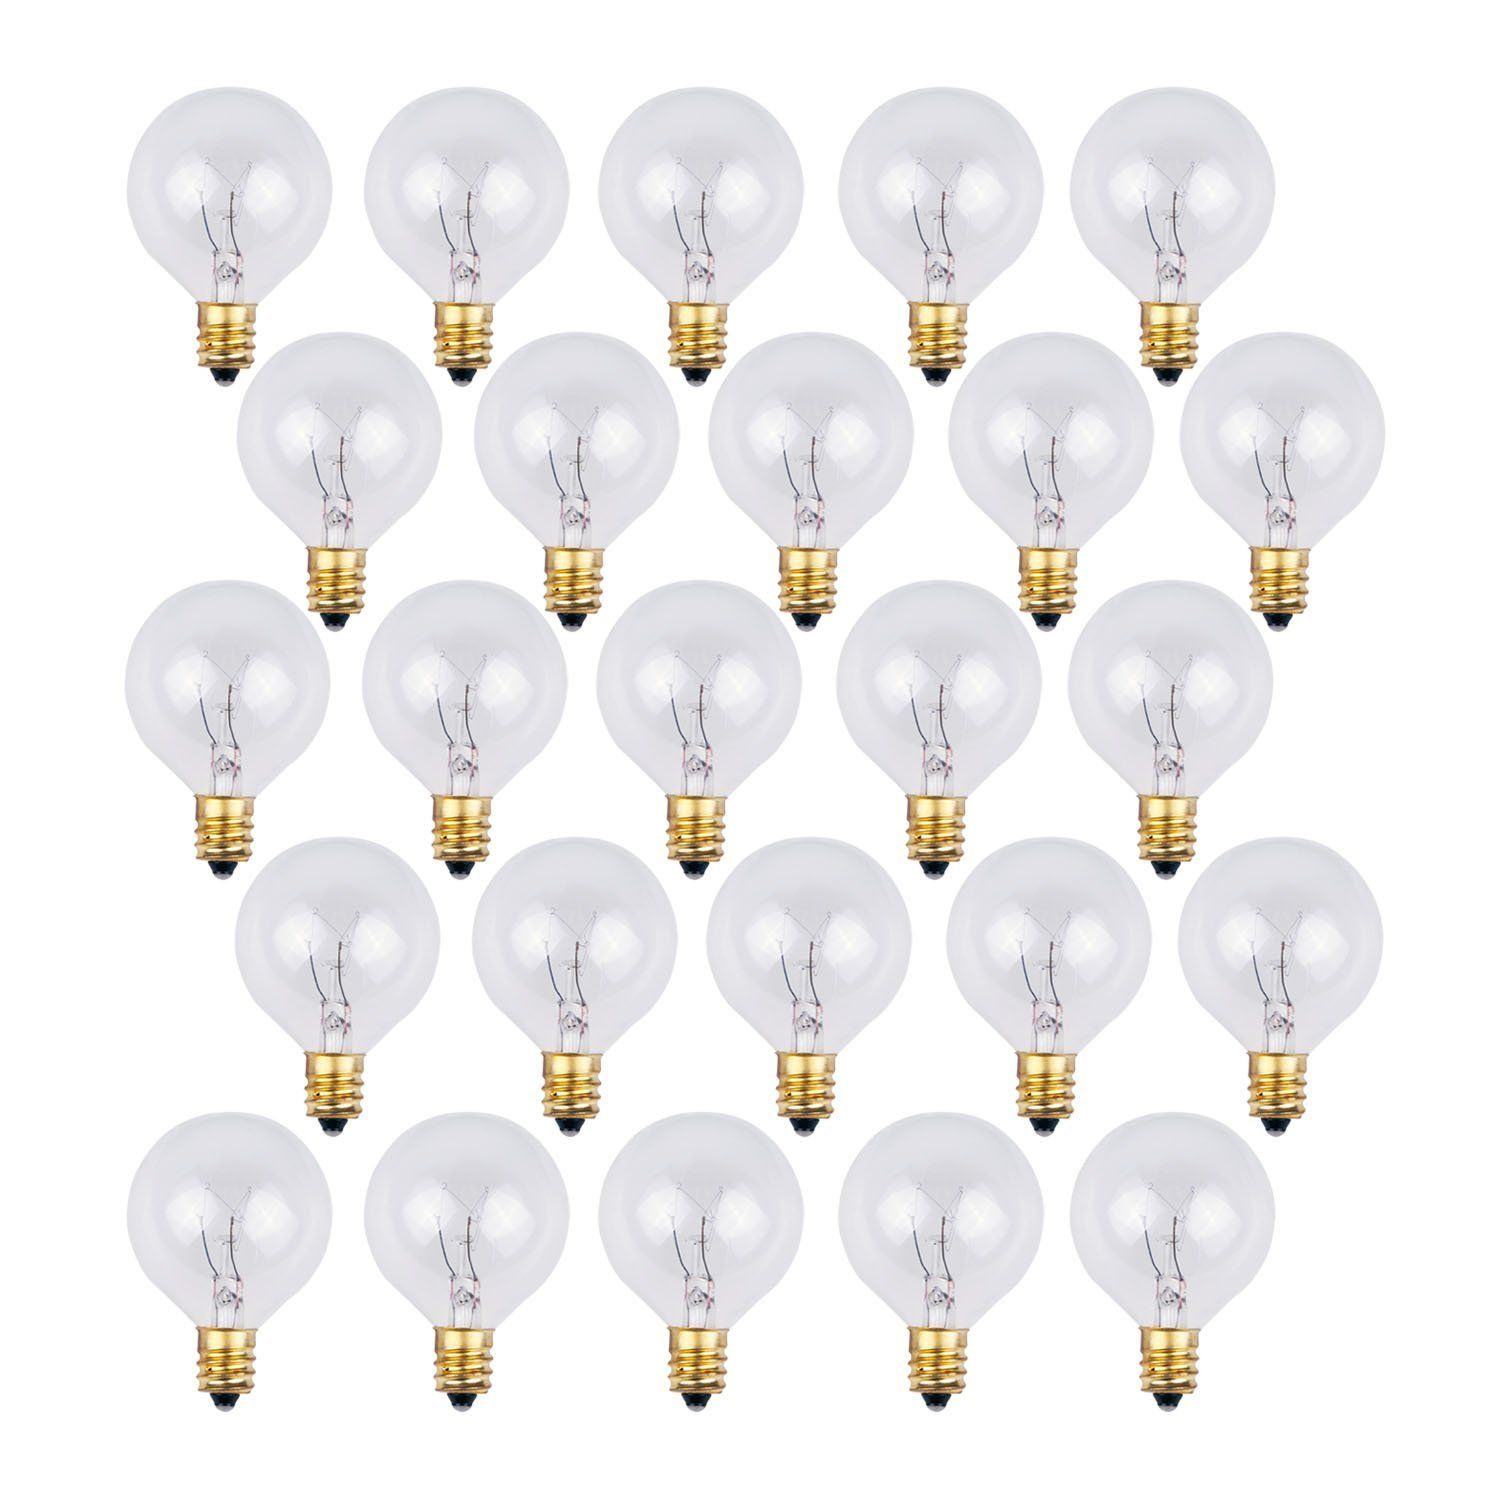 Replacement Bulbs For String Lights Enchanting 25 Pack  Clear G40 Globe Light Bulbs For Patio String Lights Fits Inspiration Design